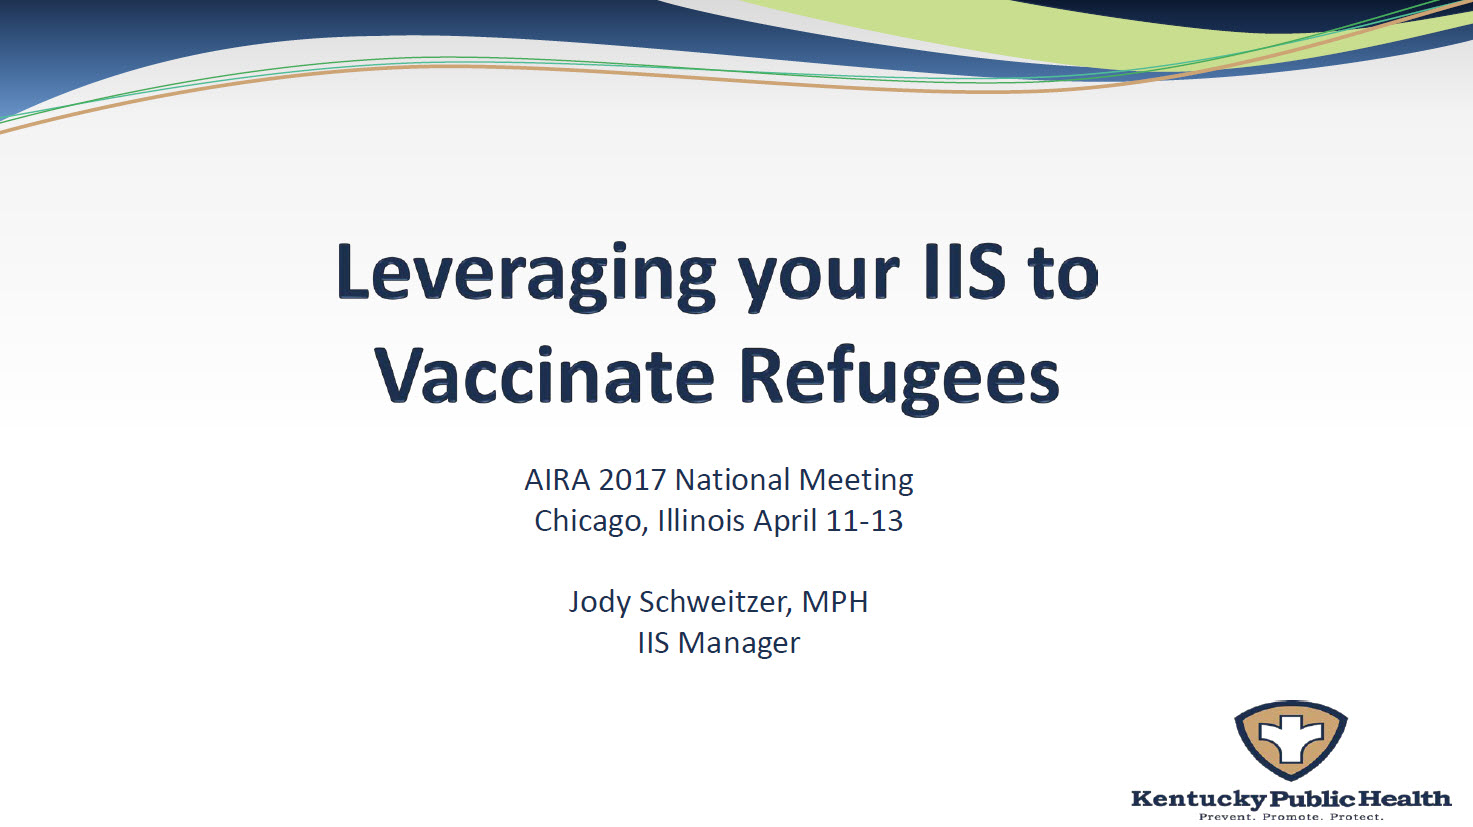 Leveraging Your IIS to Vaccinate Refugees